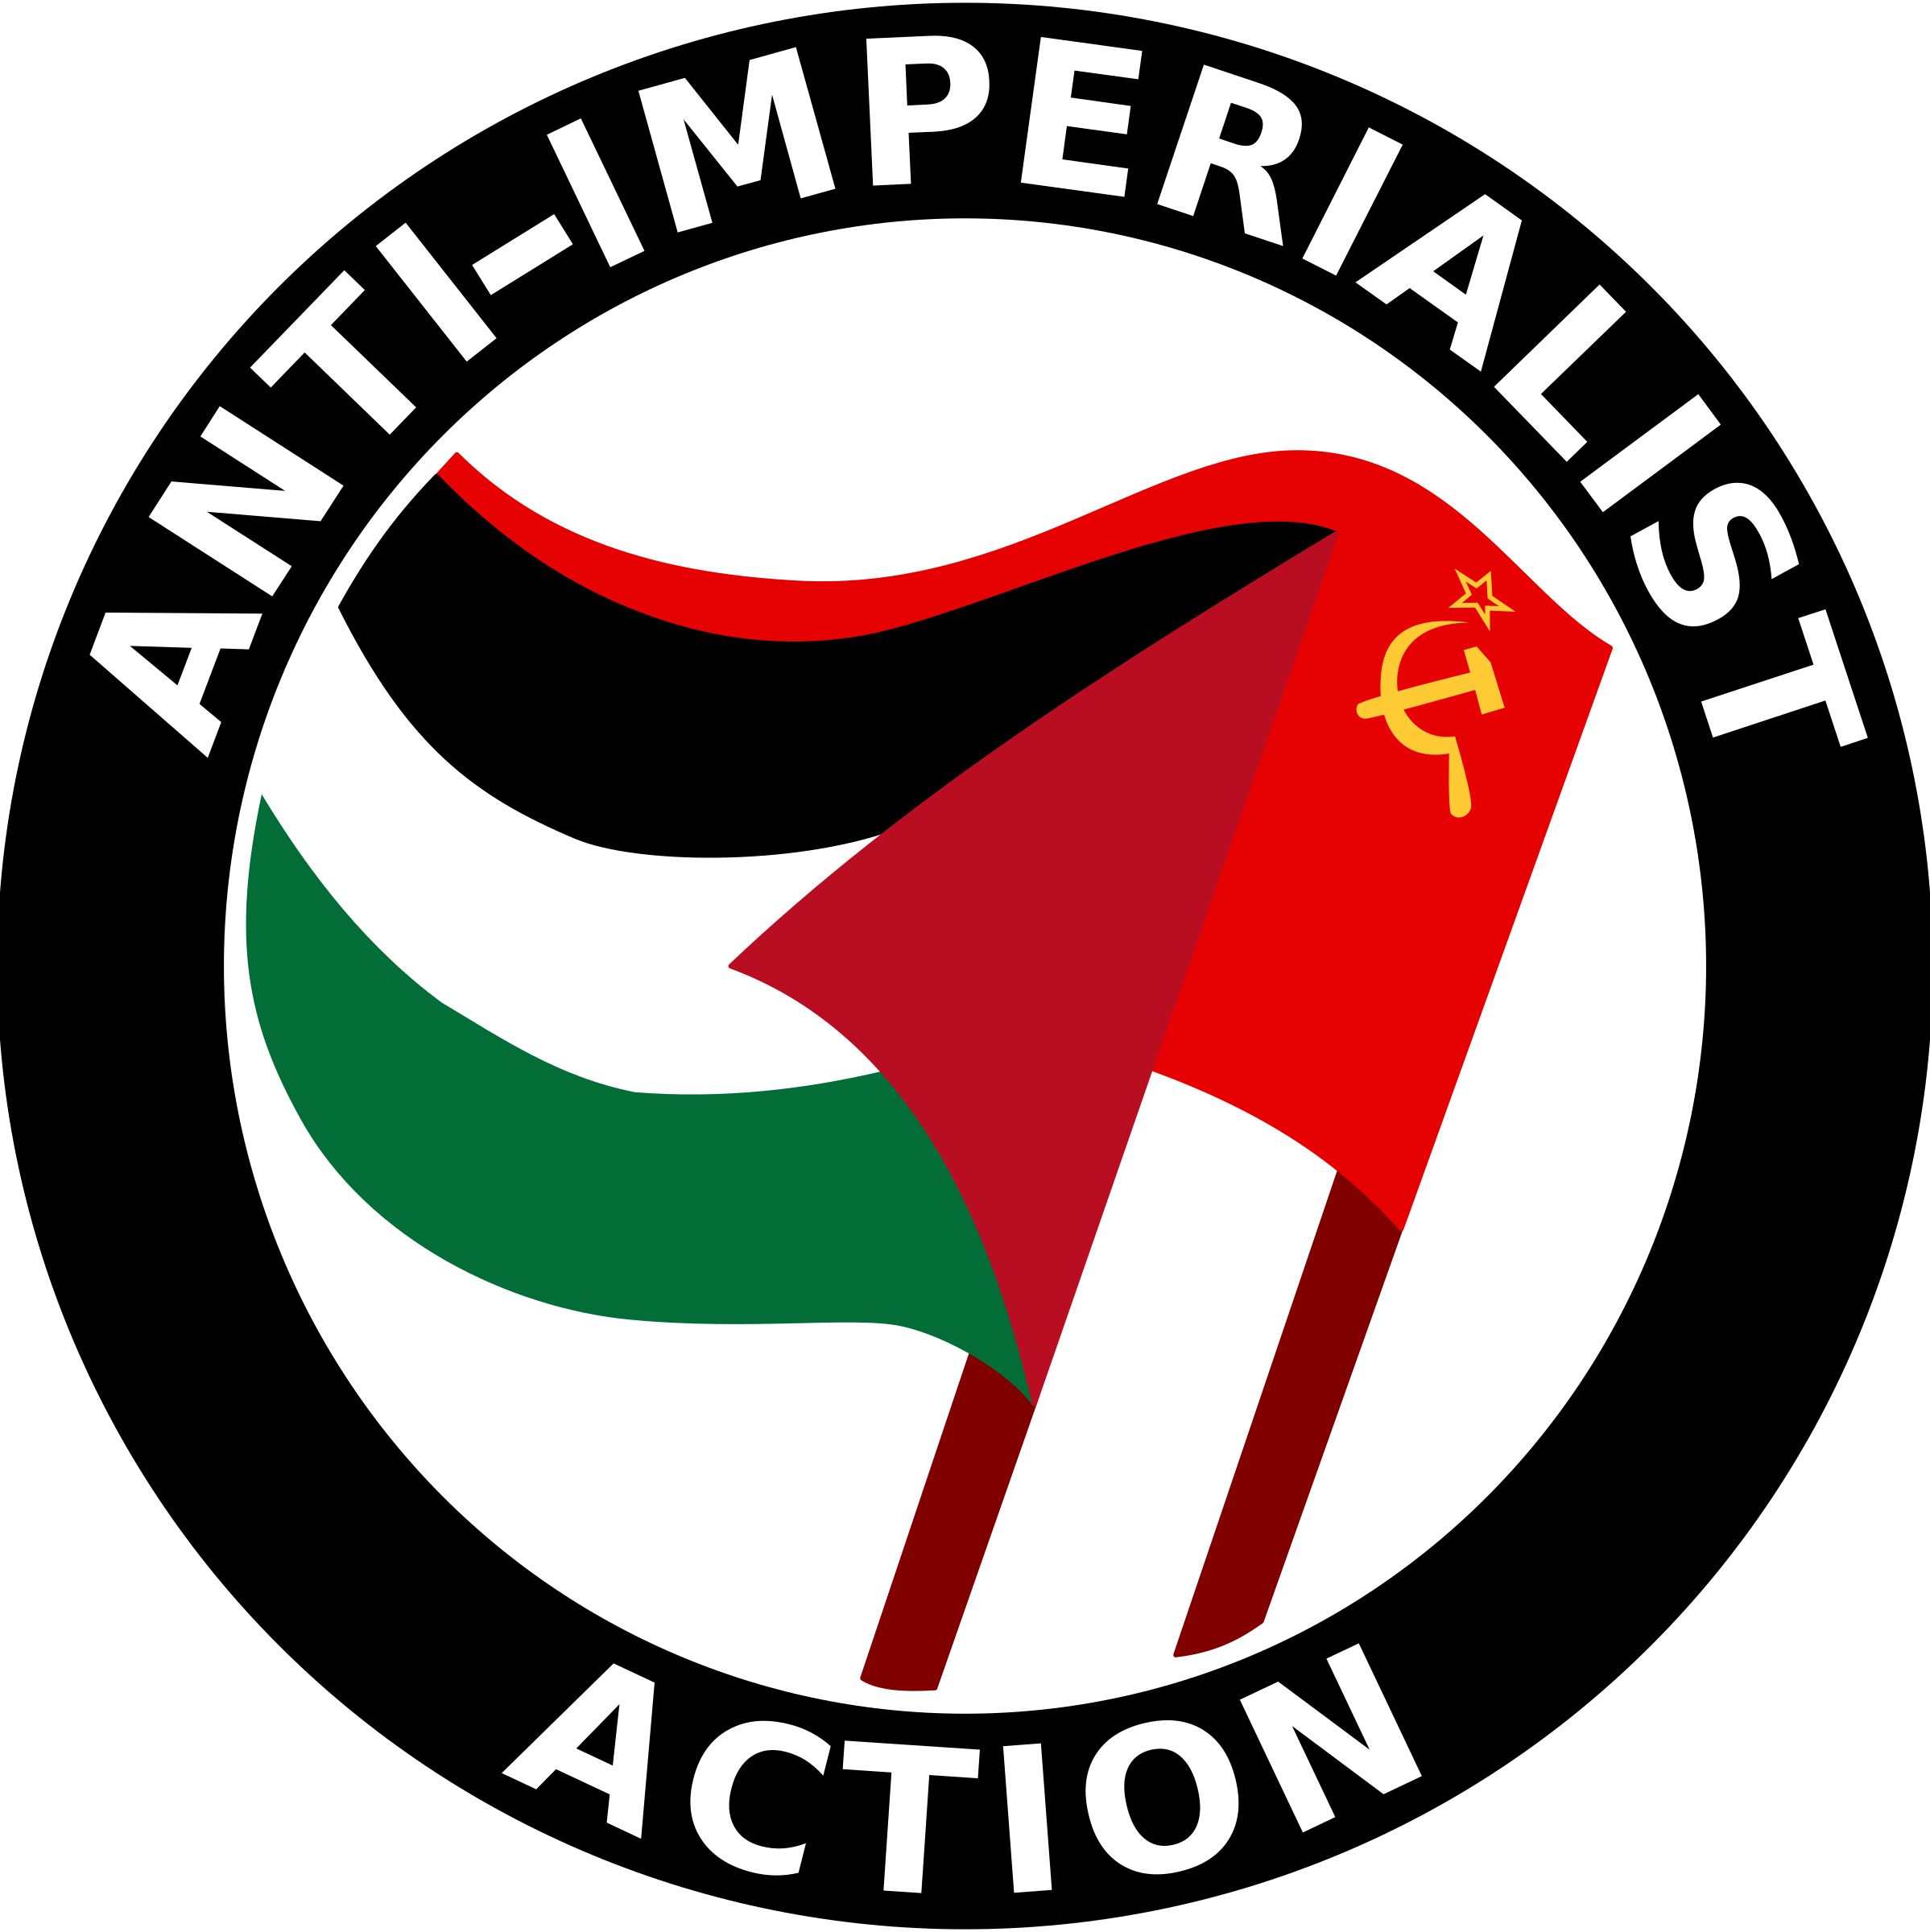 Anti-Imperialist Action by worker